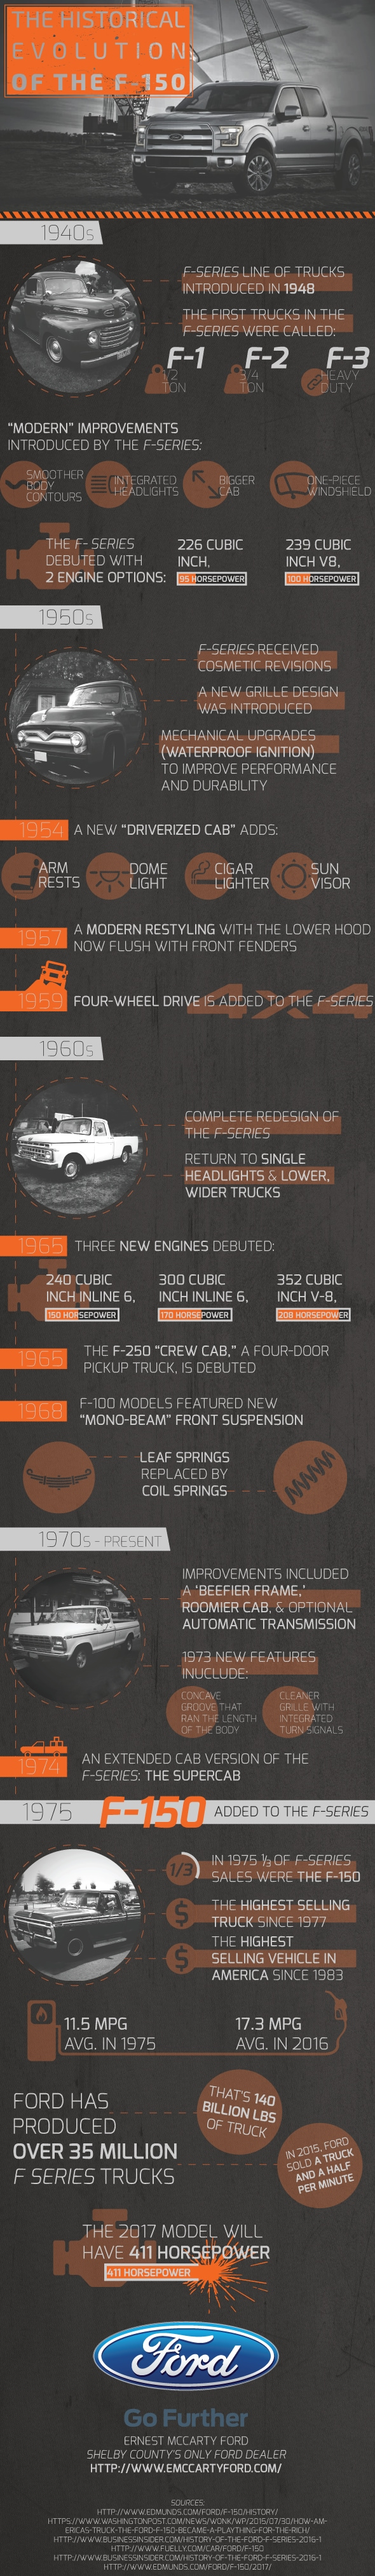 History Of The Ever-Evolving F-150